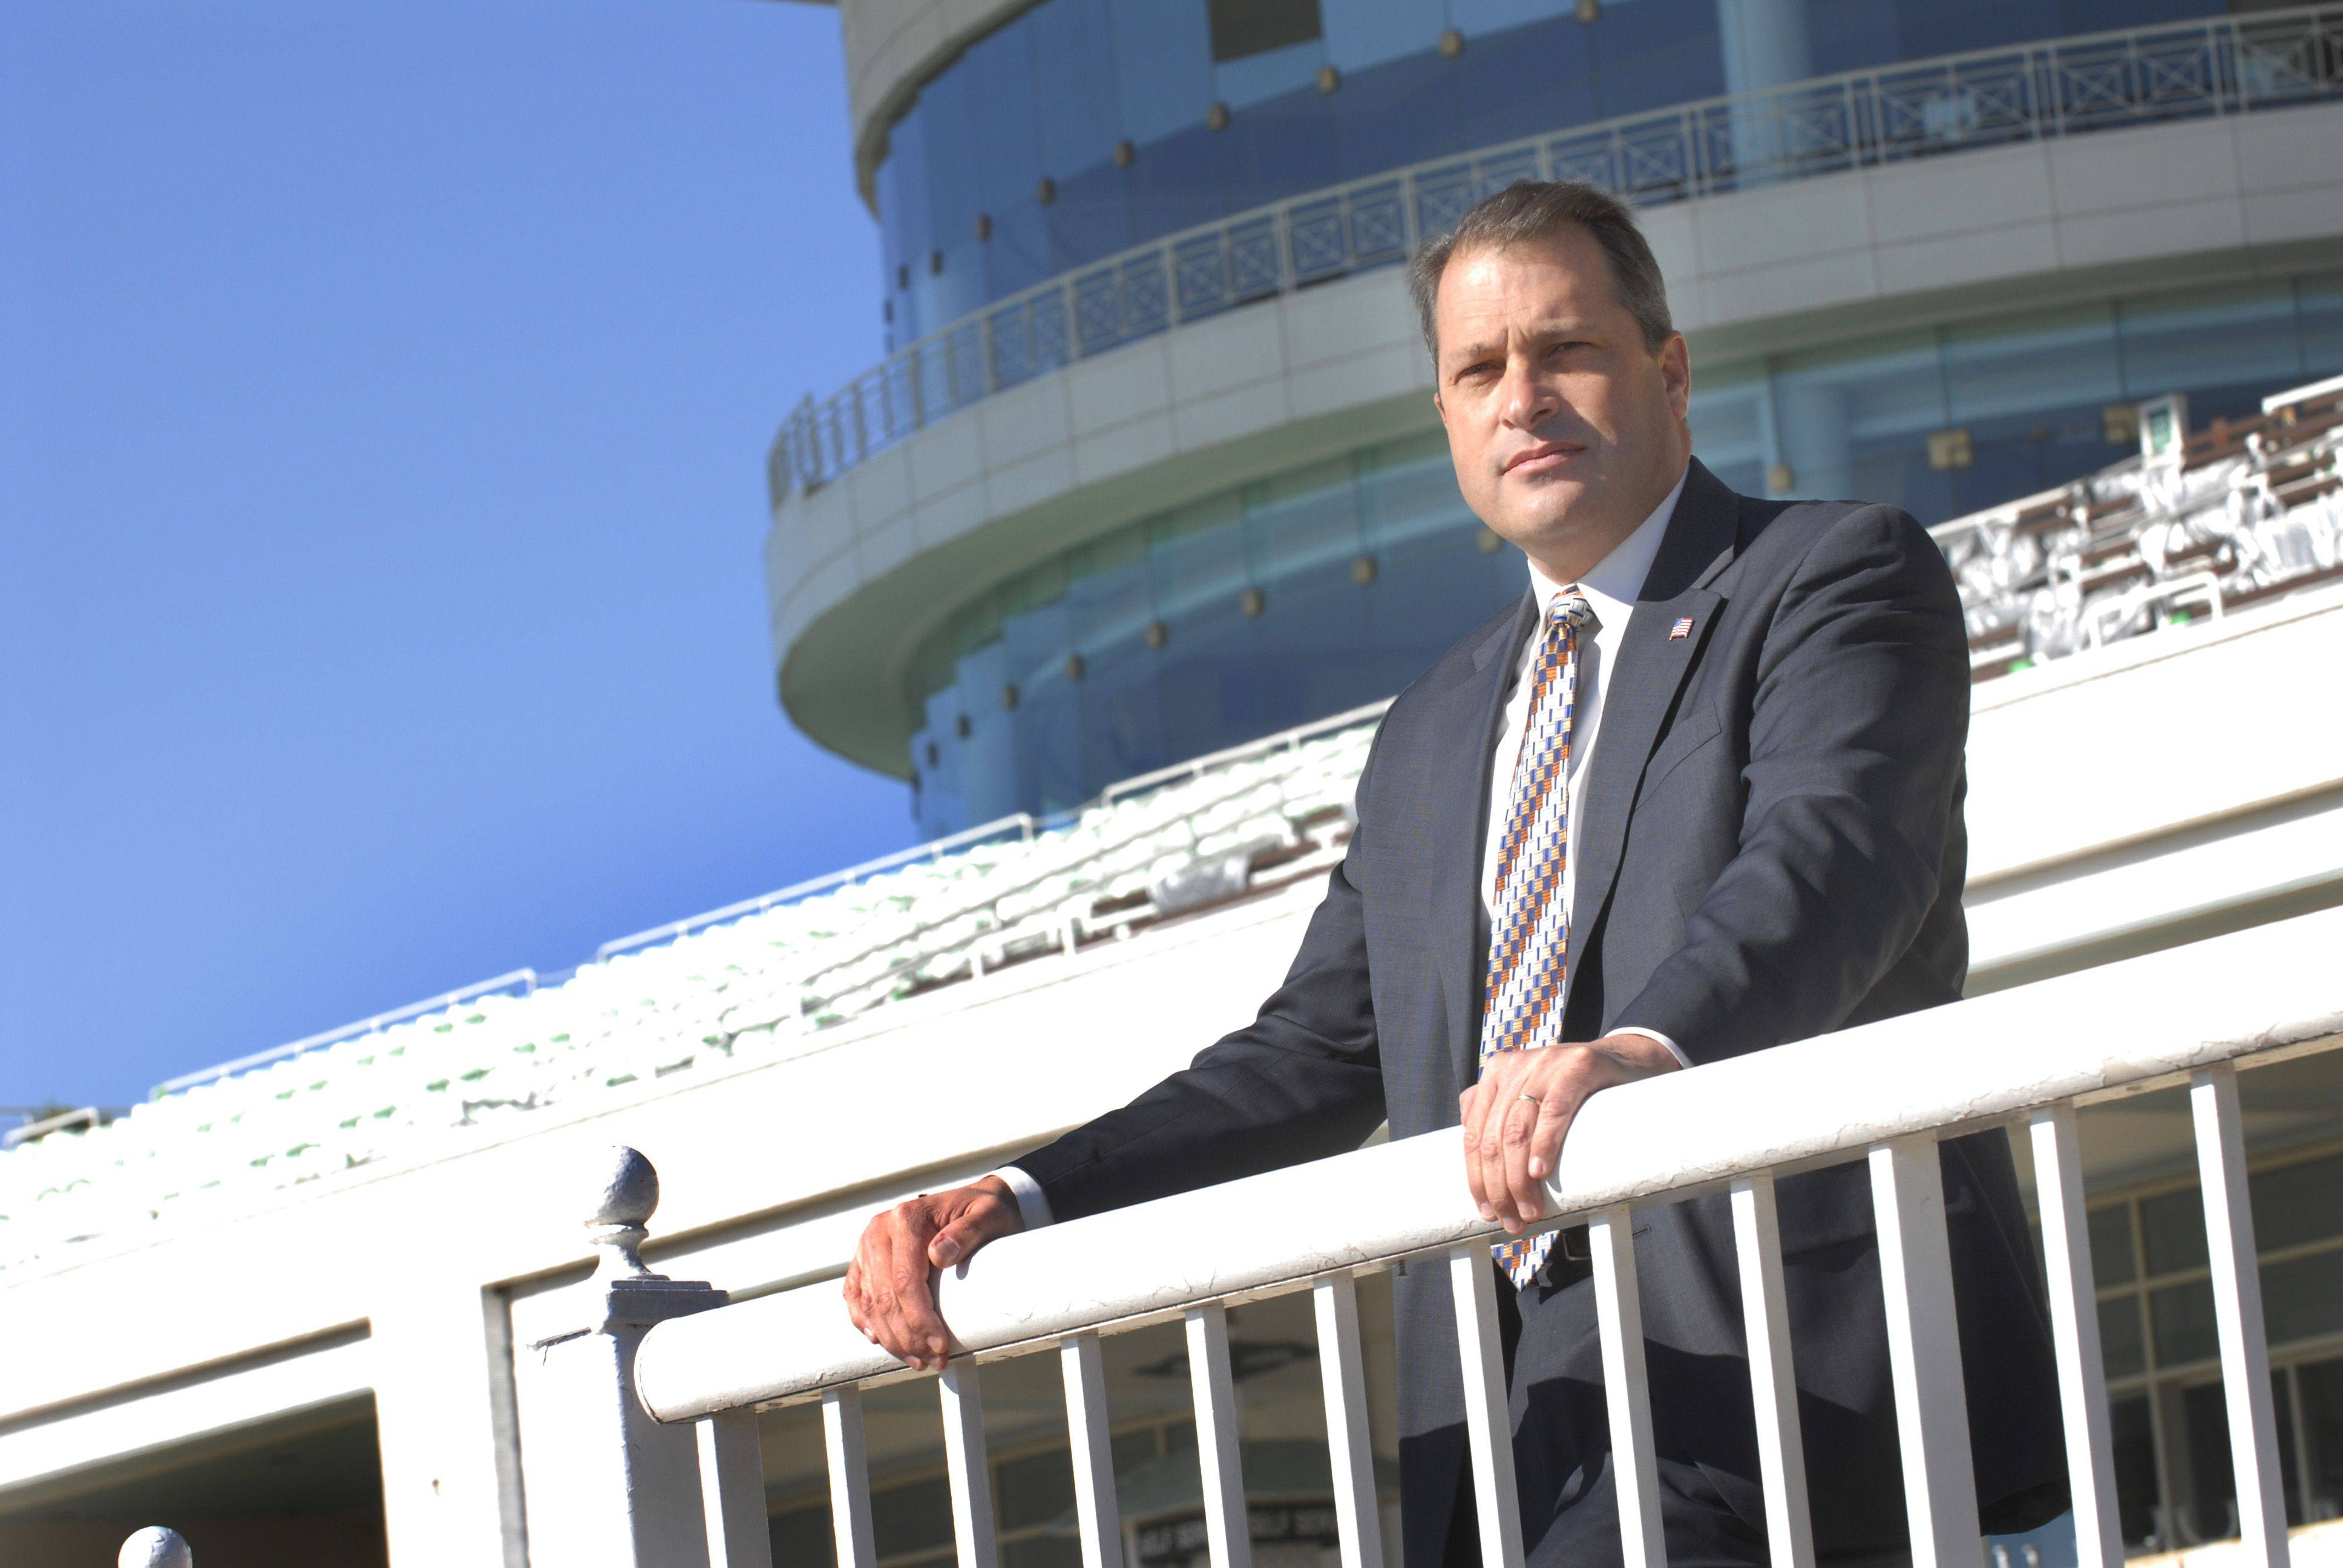 After 17 years working at the track, Tony Petrillo is the new general manager for Arlington Park.